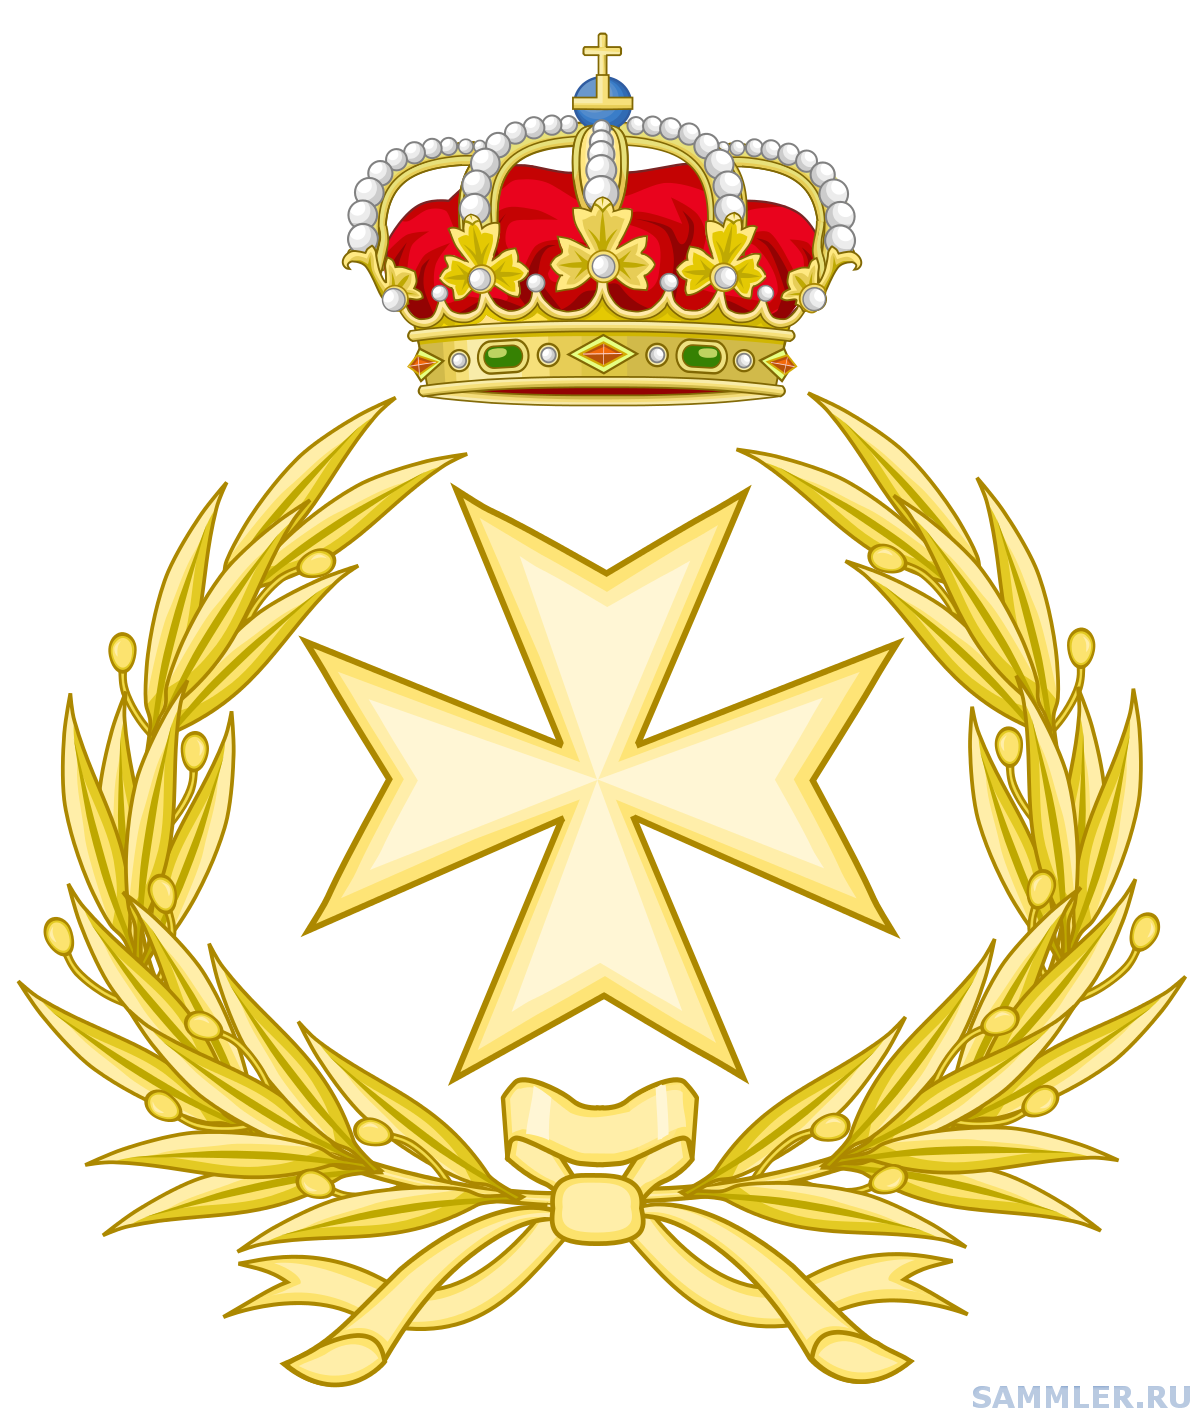 Emblem_of_the_Spanish_Military_Medicine_(Ornamented_variant).svg.png